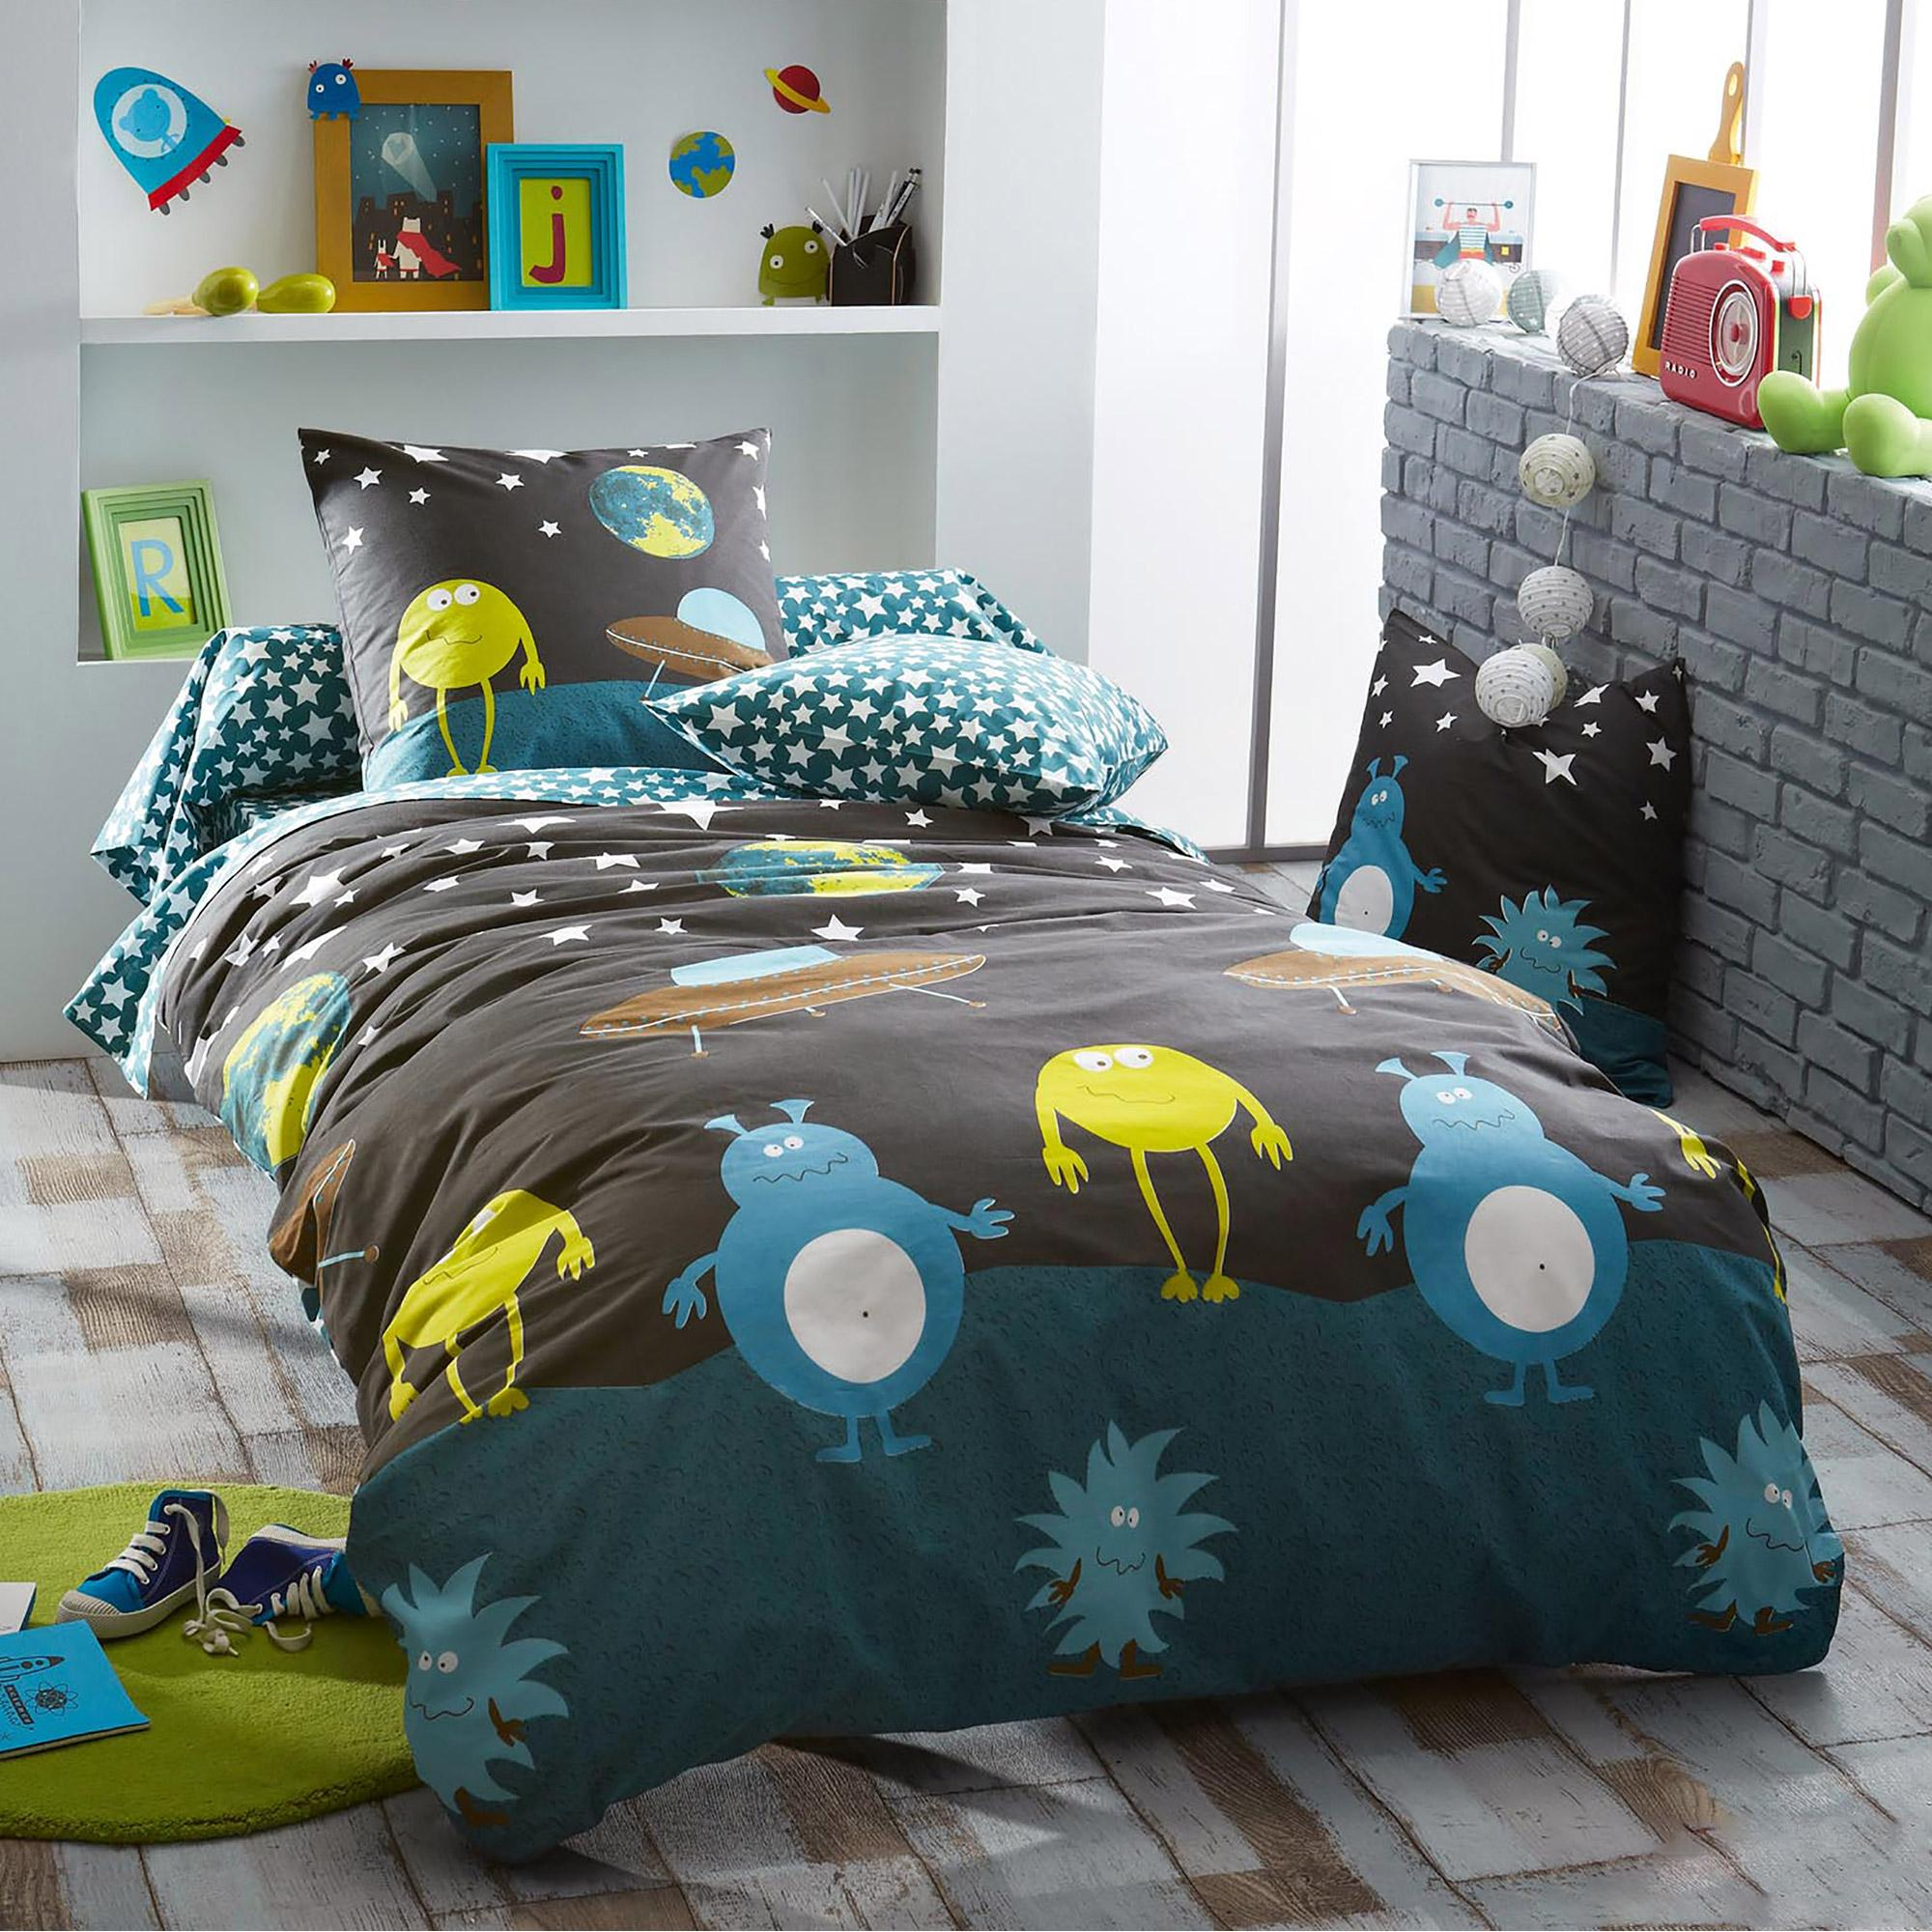 parure de lit 200x200 100 coton monsters eur 72 75 picclick fr. Black Bedroom Furniture Sets. Home Design Ideas